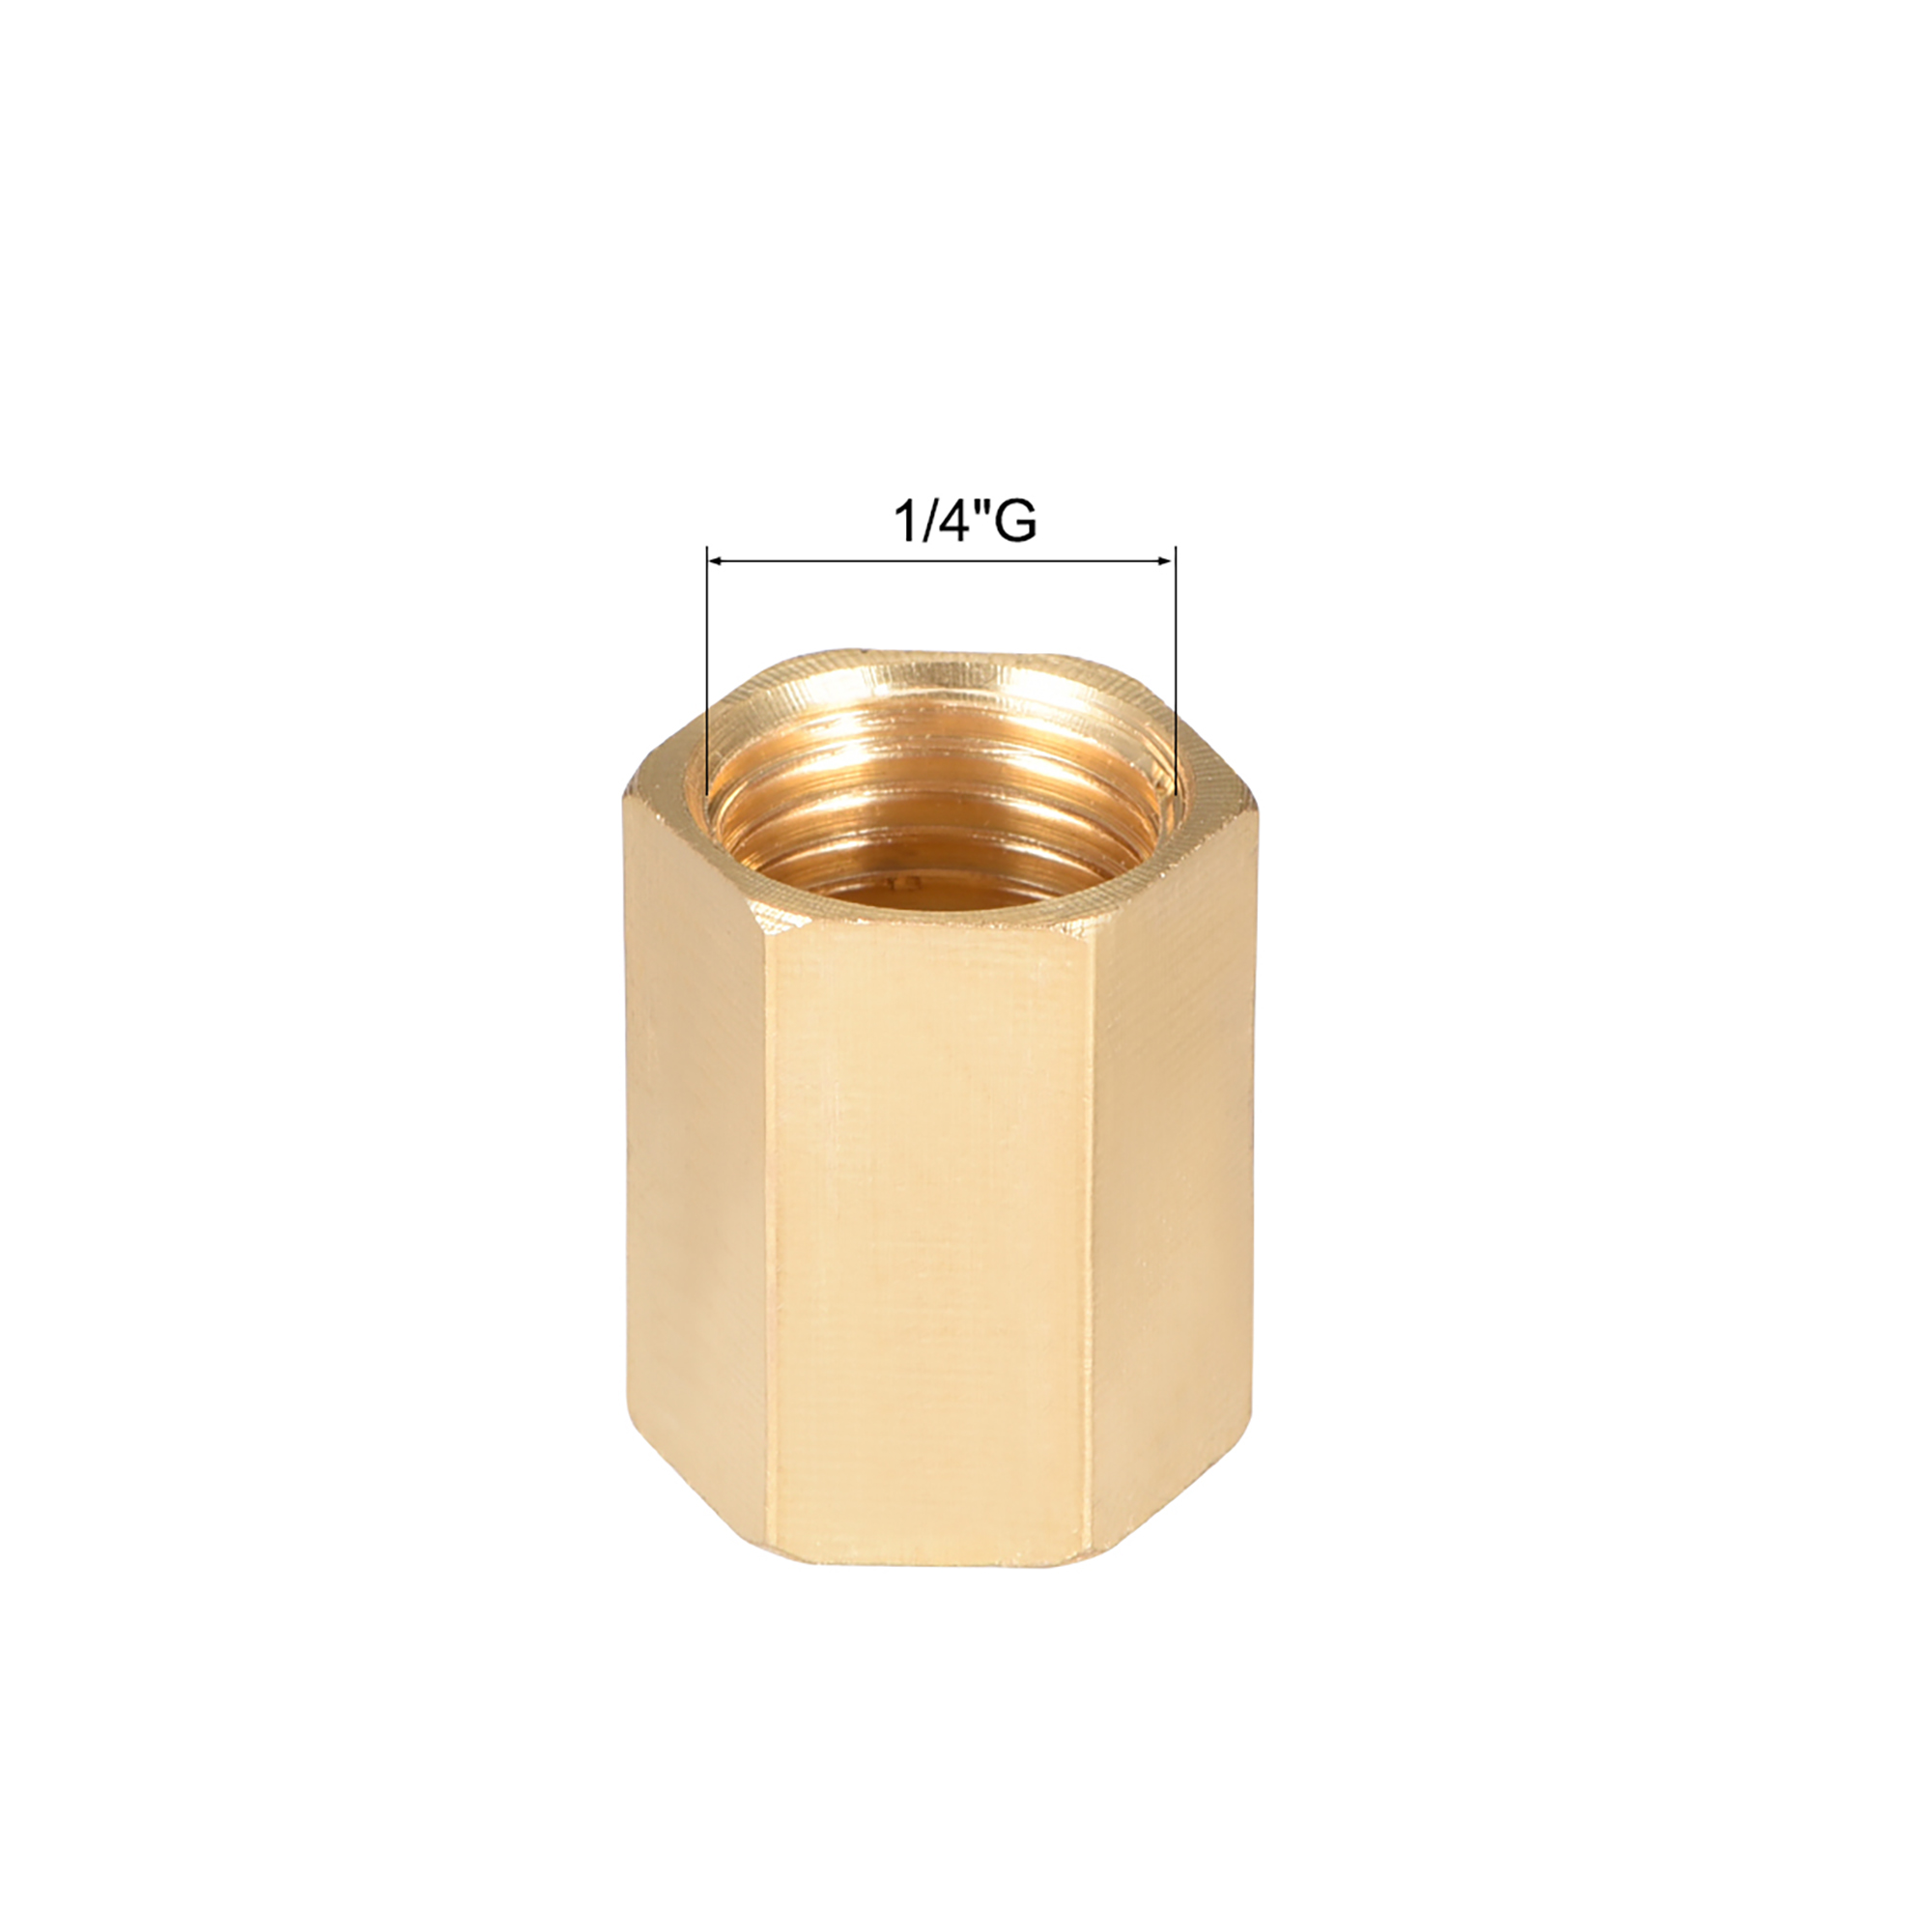 """Brass Pipe Fitting, 1/4"""" G Female Thread Straight Brass Hex Rod Pipe Fitting Coupling - image 2 de 4"""